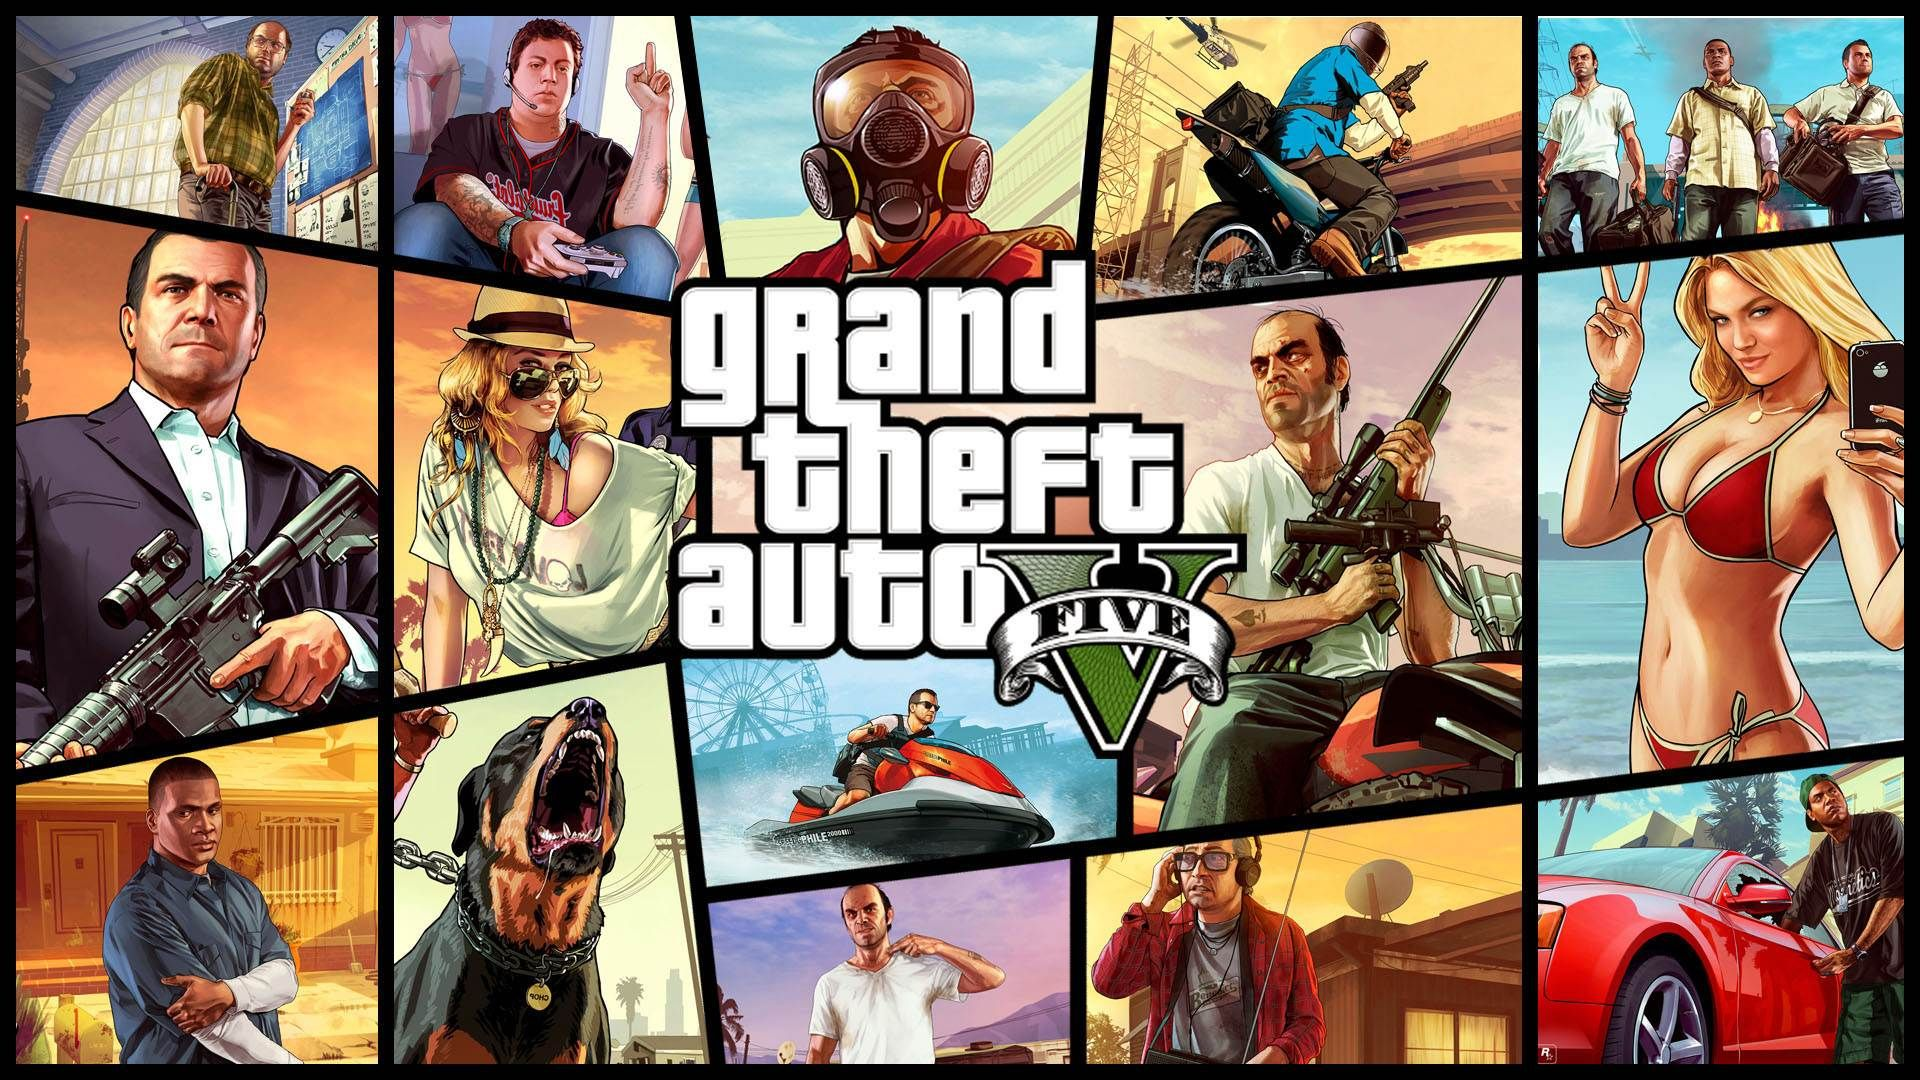 Collection Of Gta V Wallpaper On Hdwallpapers X Gta V Wallpaper Adorable Wallpapers